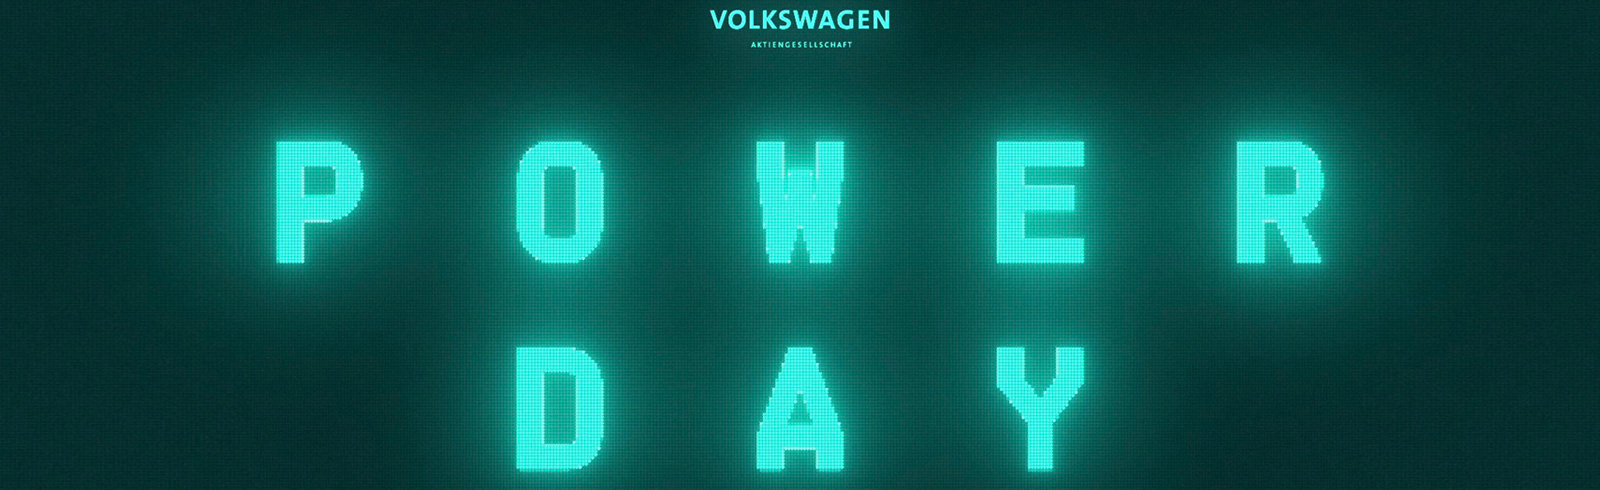 Volkswagen Power Day - technology roadmap for battery and charging by 2030